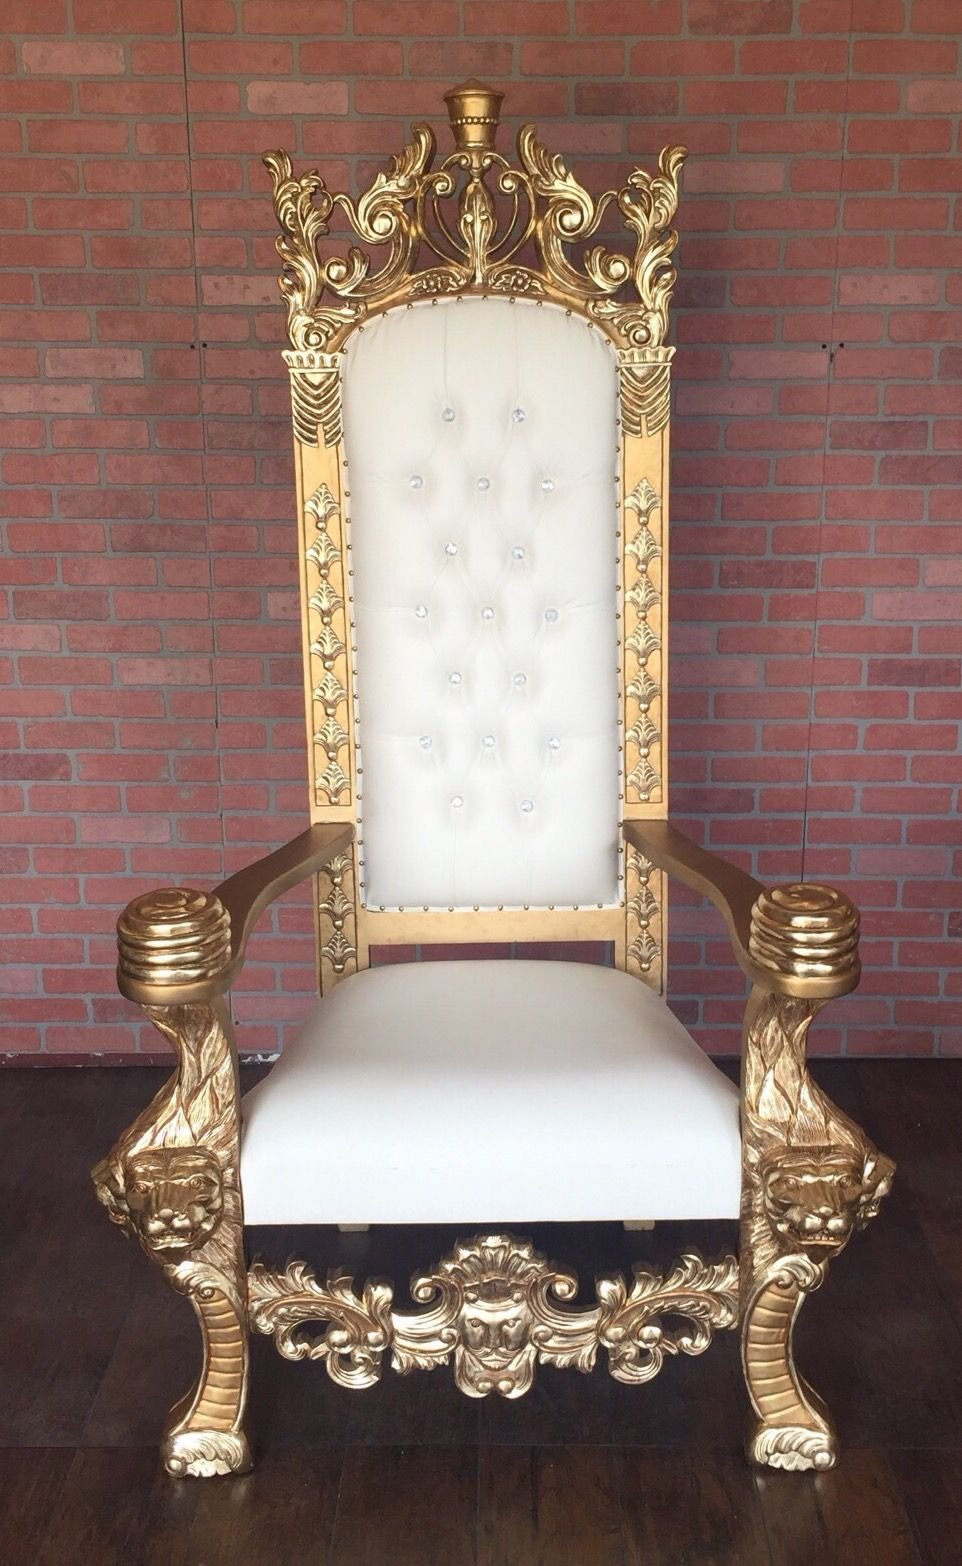 Absolom Roche King Henry Lion Throne Chair Gold White